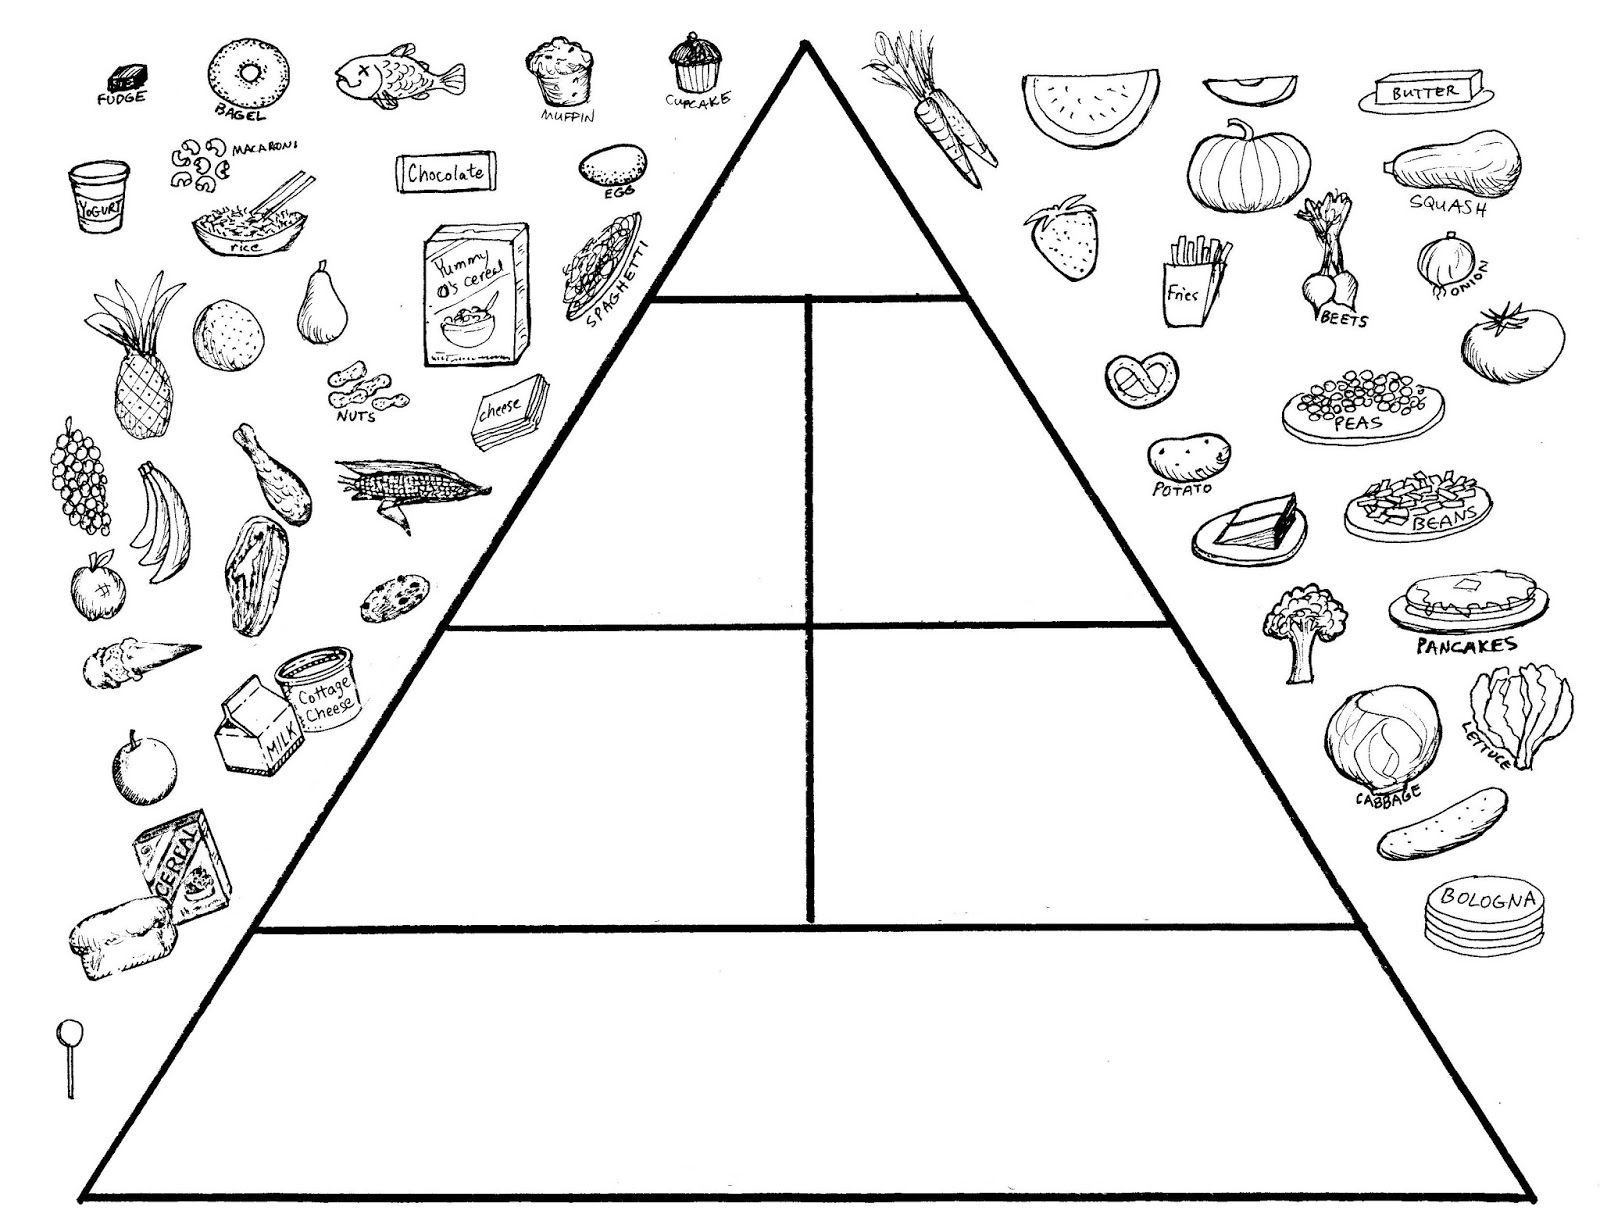 worksheet Food Pyramid Worksheet 10 best images about open class 2015 on pinterest dibujo food pyramid and free printable coloring pages